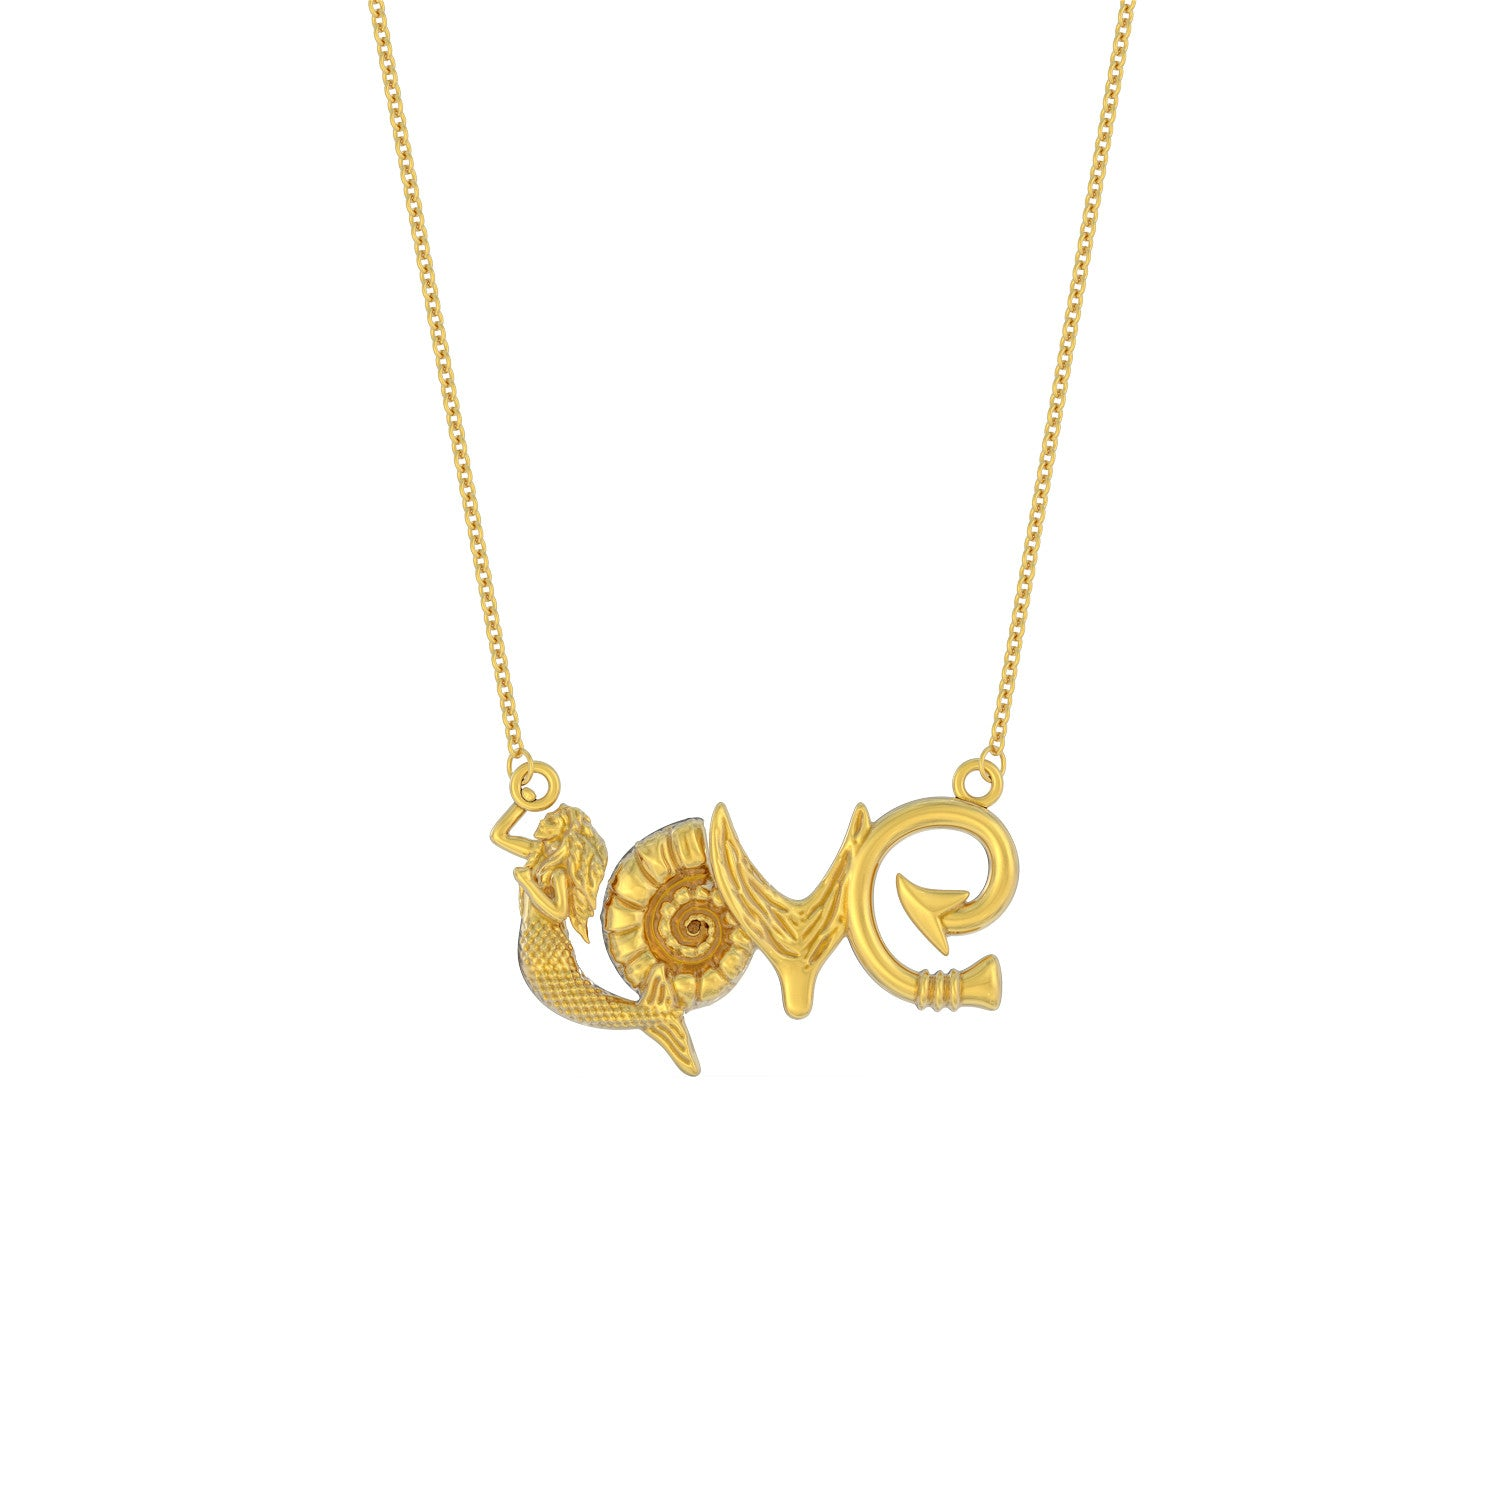 LOVE - Mermaid Necklace